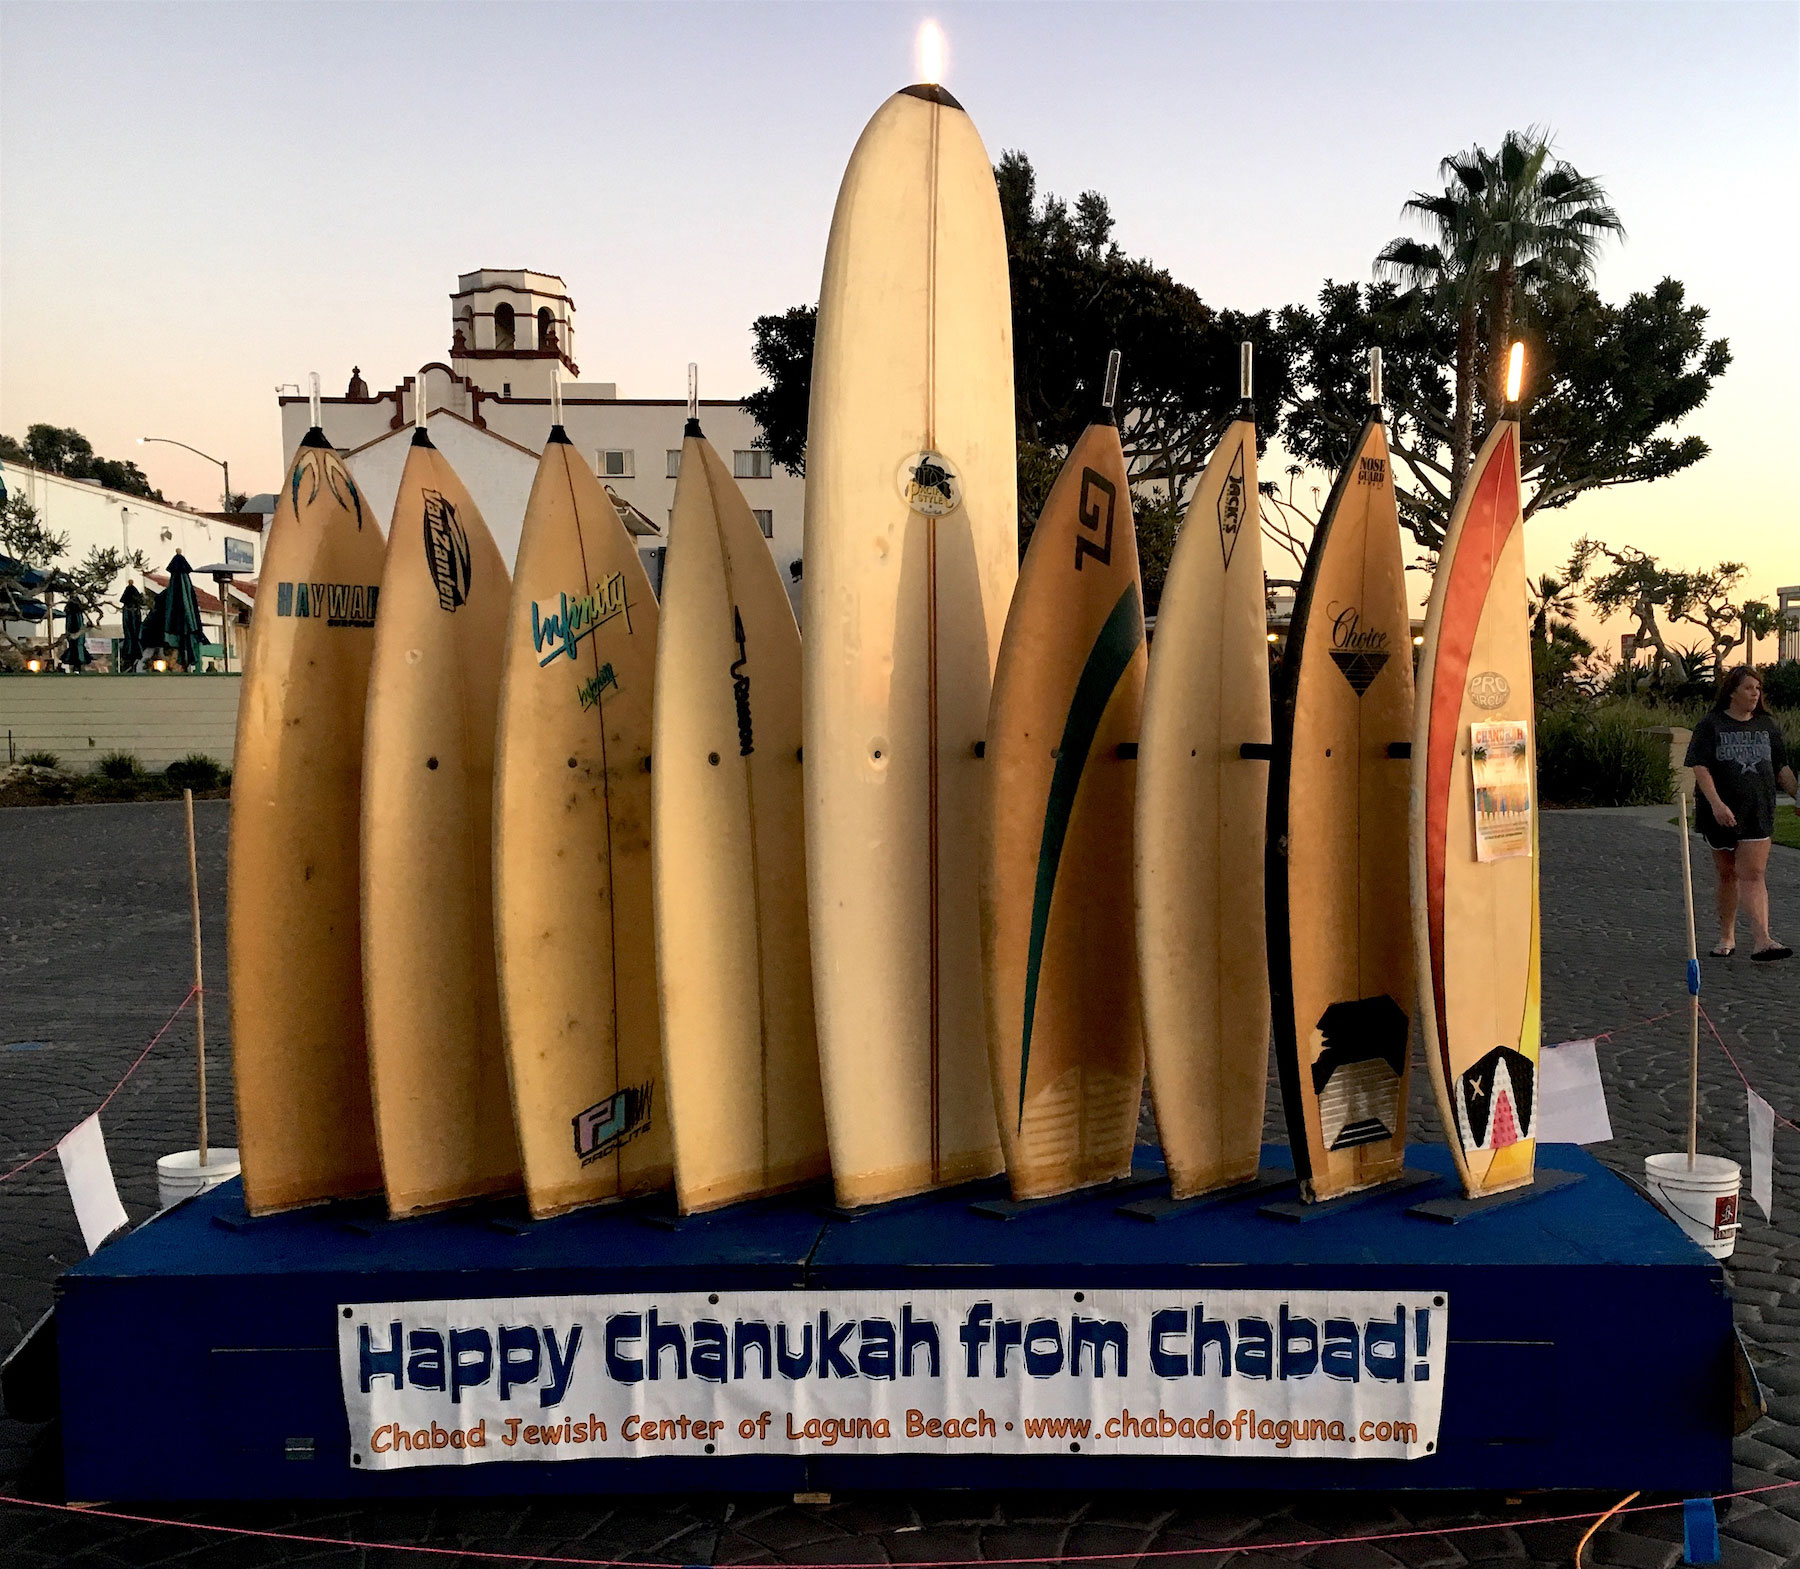 Chabad announces Chanukah